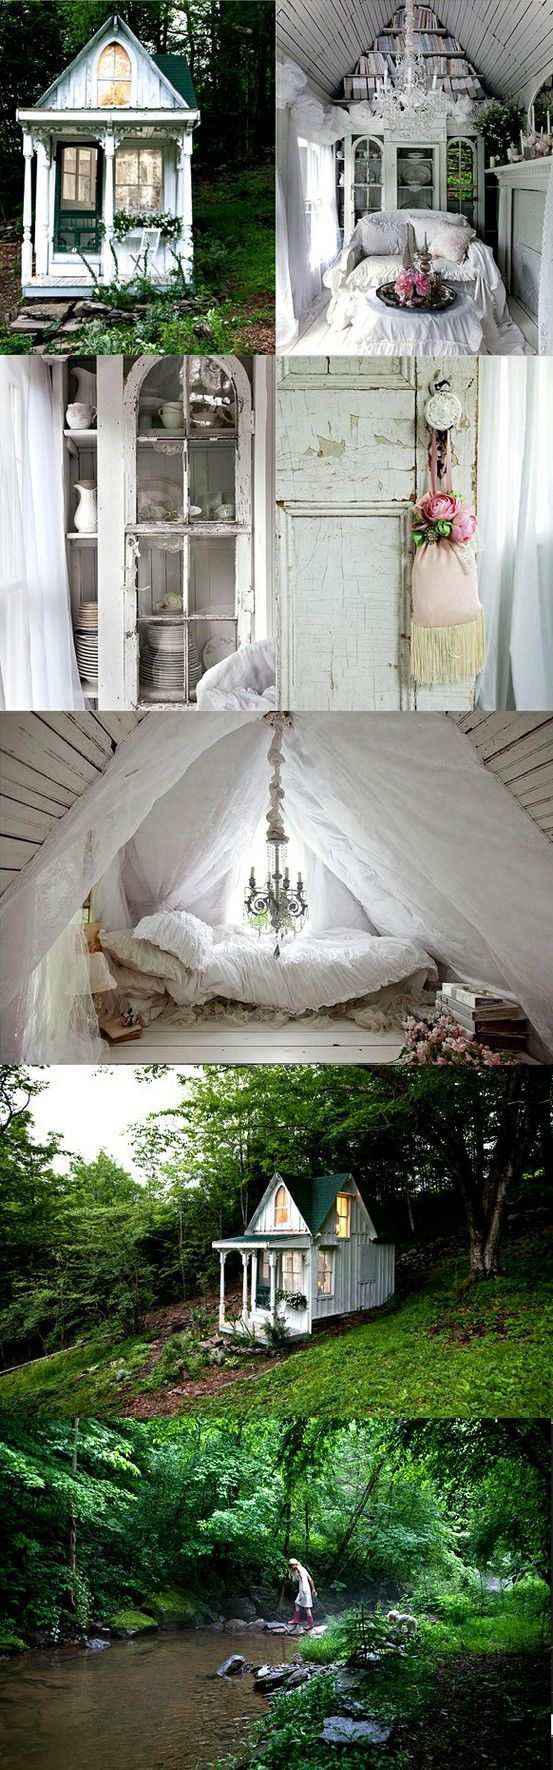 lately ive realllllly just wanted a cute charming cottage like this to escape life to